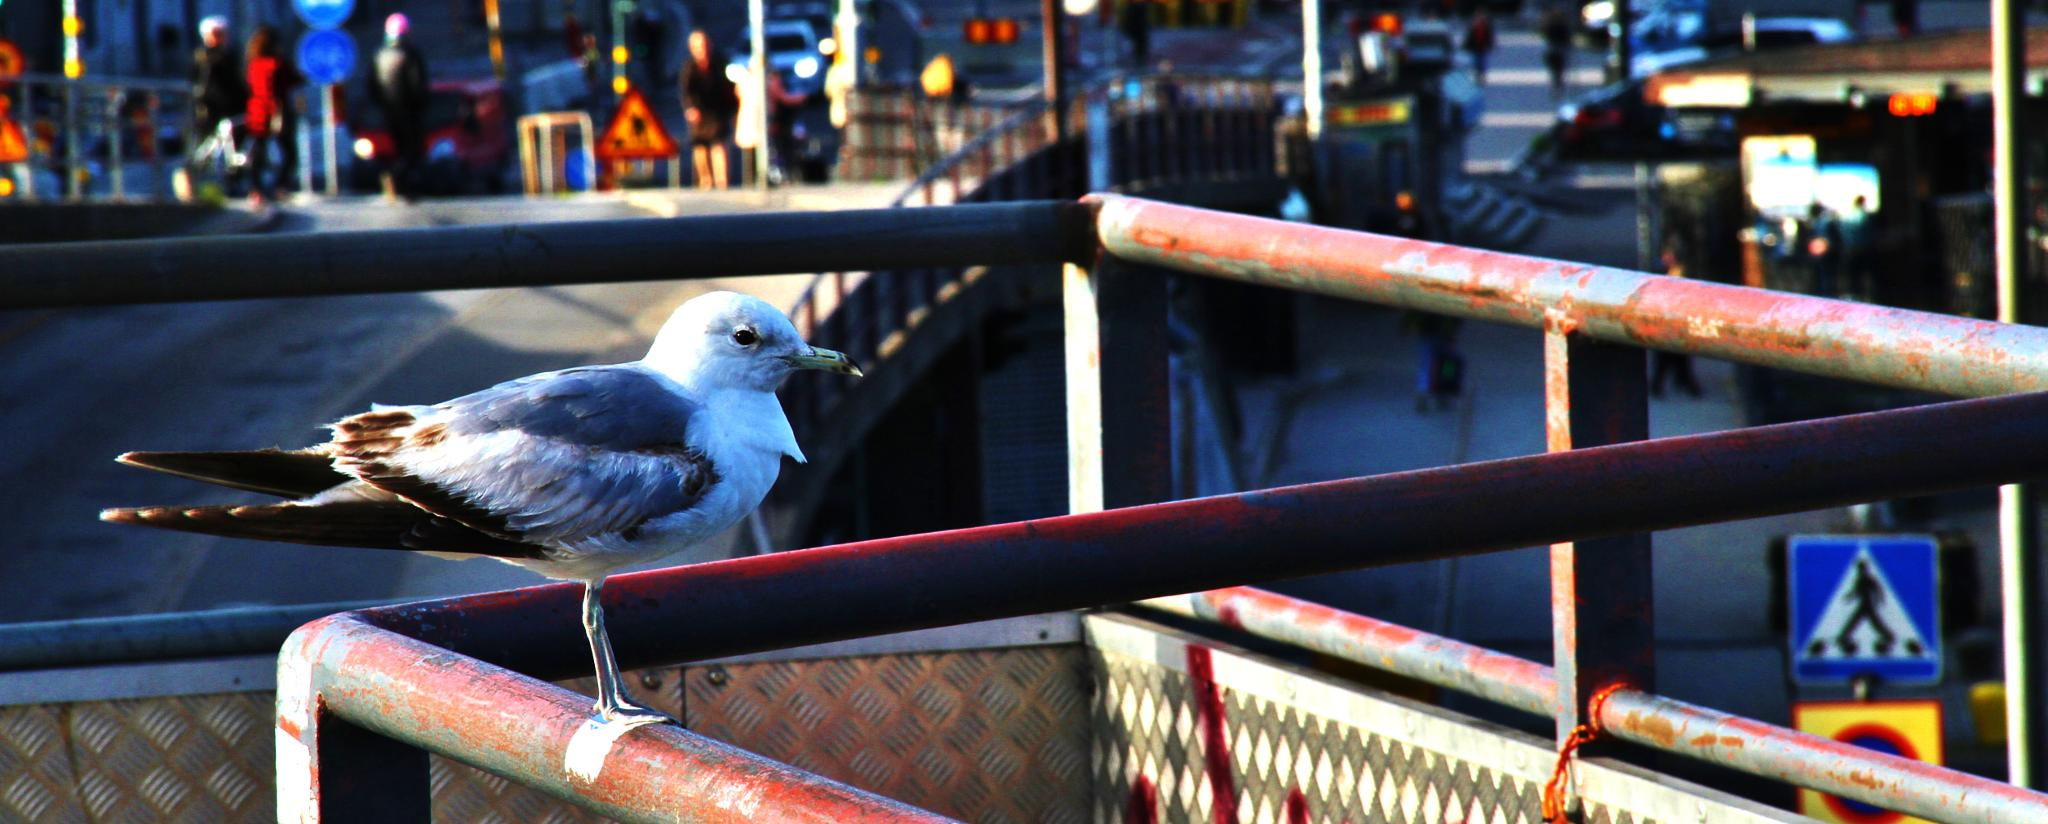 City seagull by Hans Andreas Alexander Müller